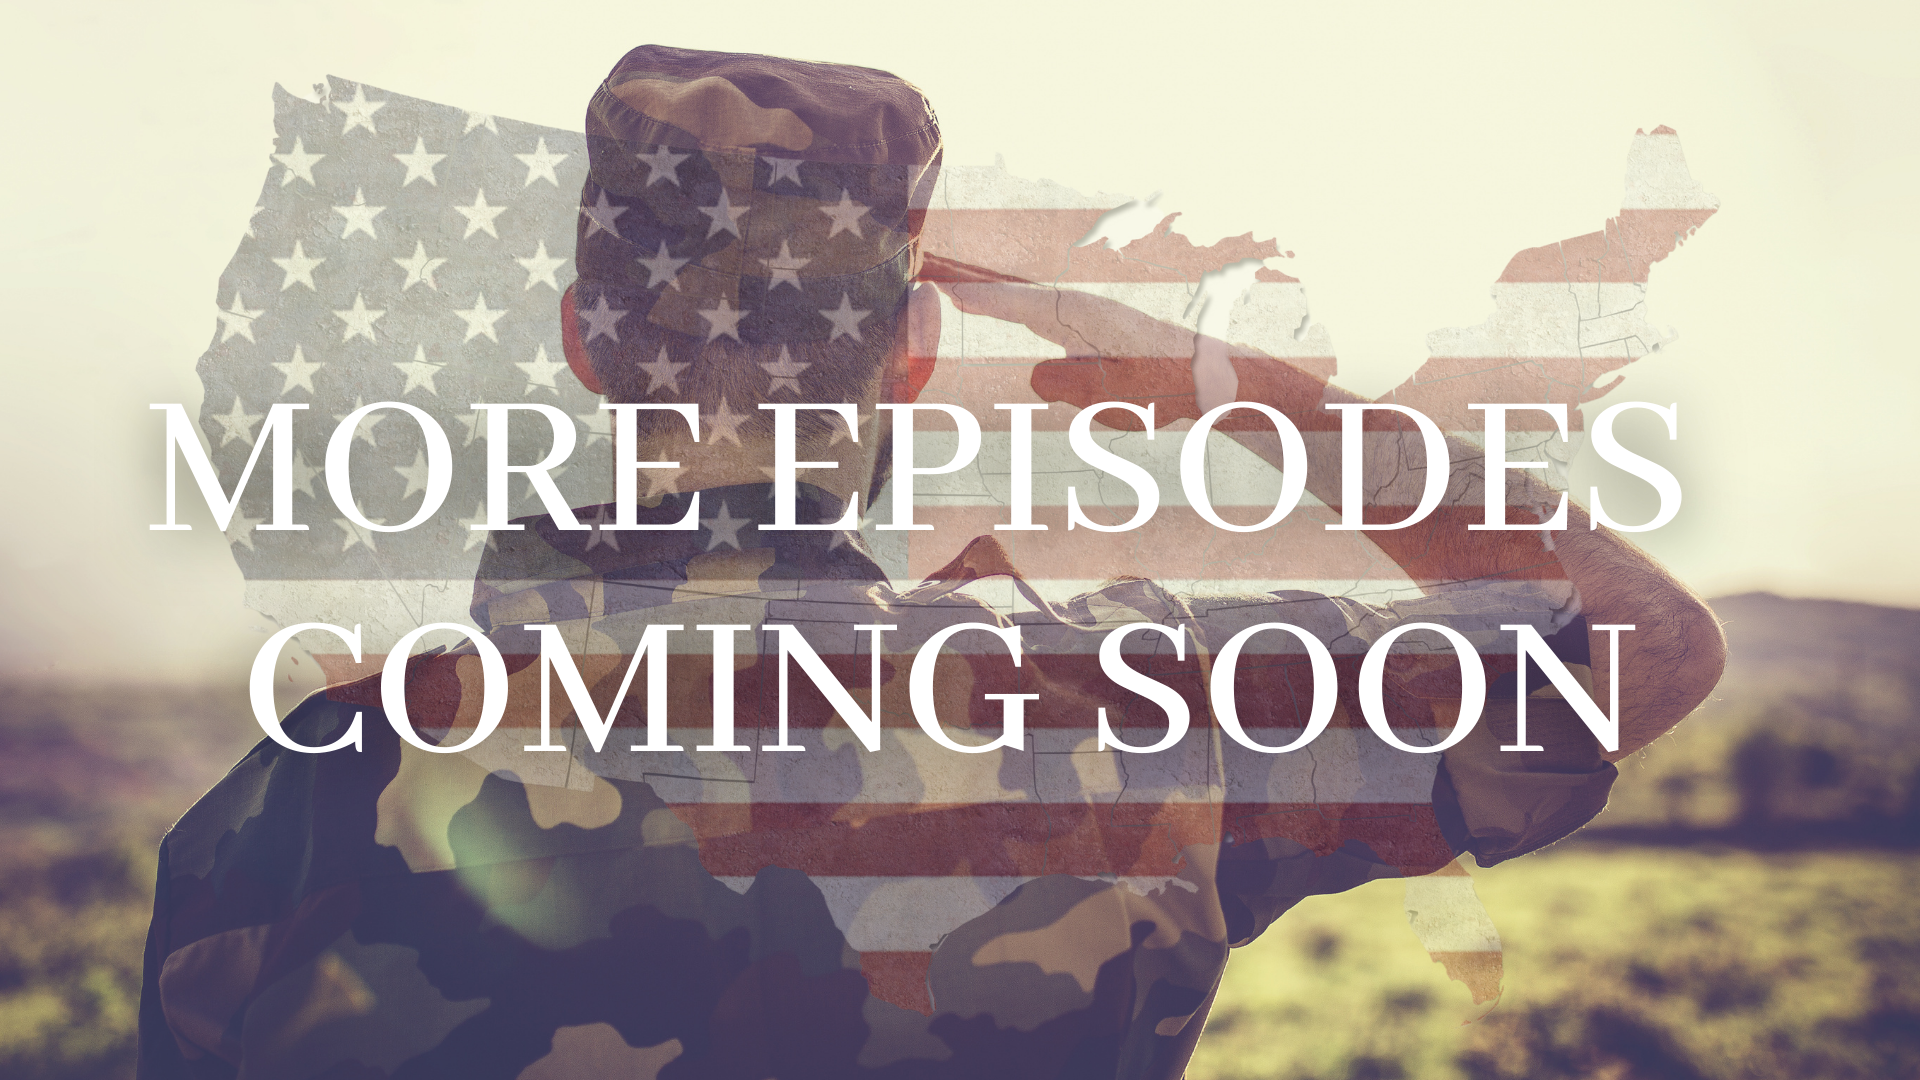 MORE EPISODES COMING SOON 5.png